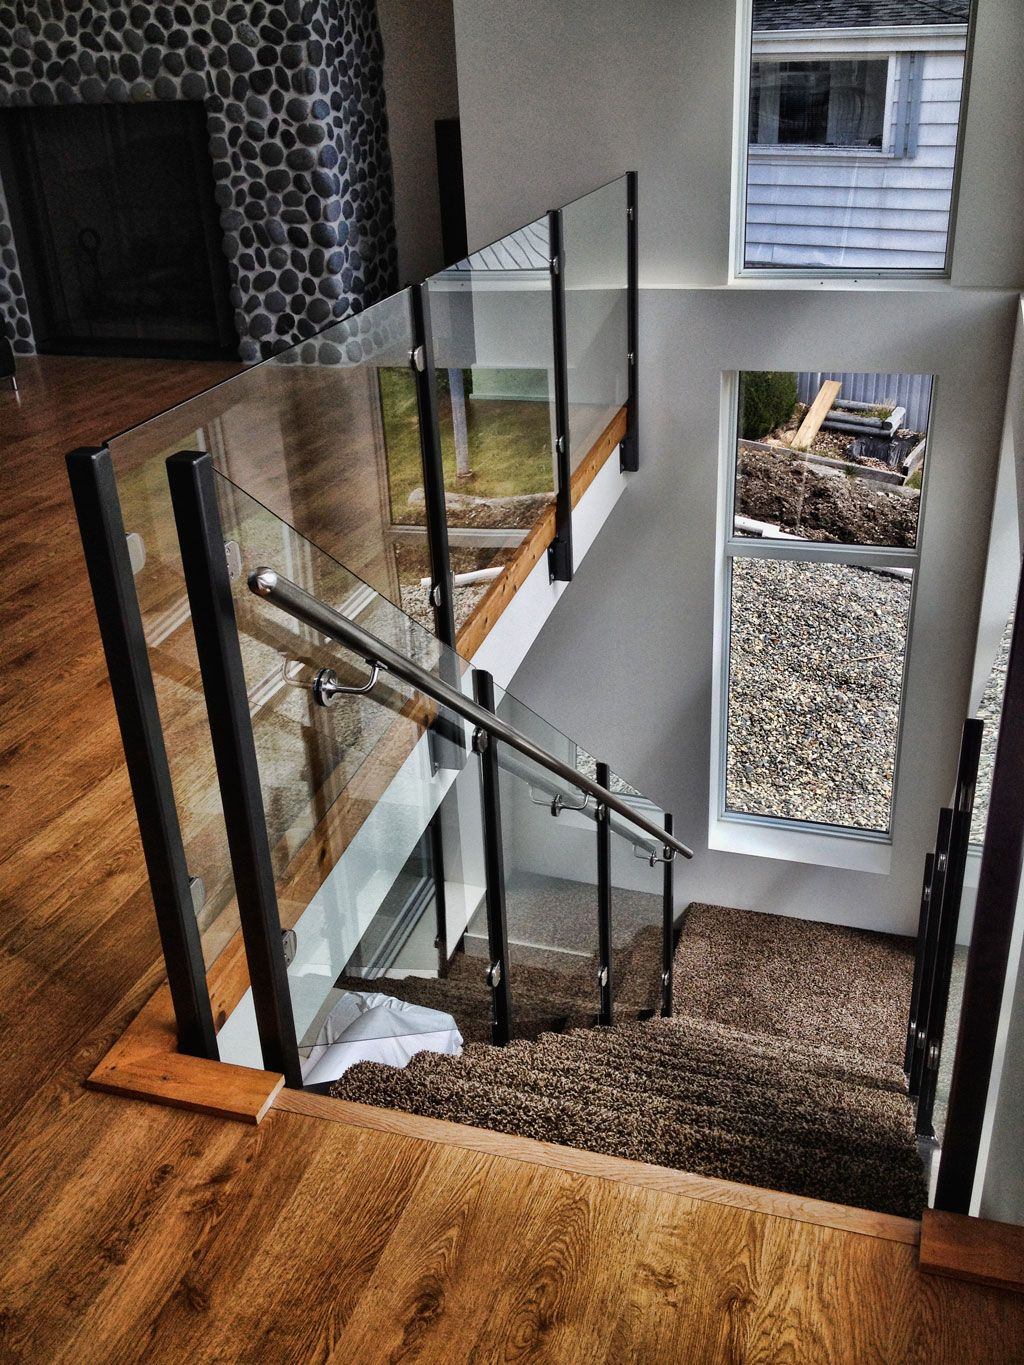 Picture Gallery Of Our Custom Glass Railings Interior | Glass Balusters For Stairs